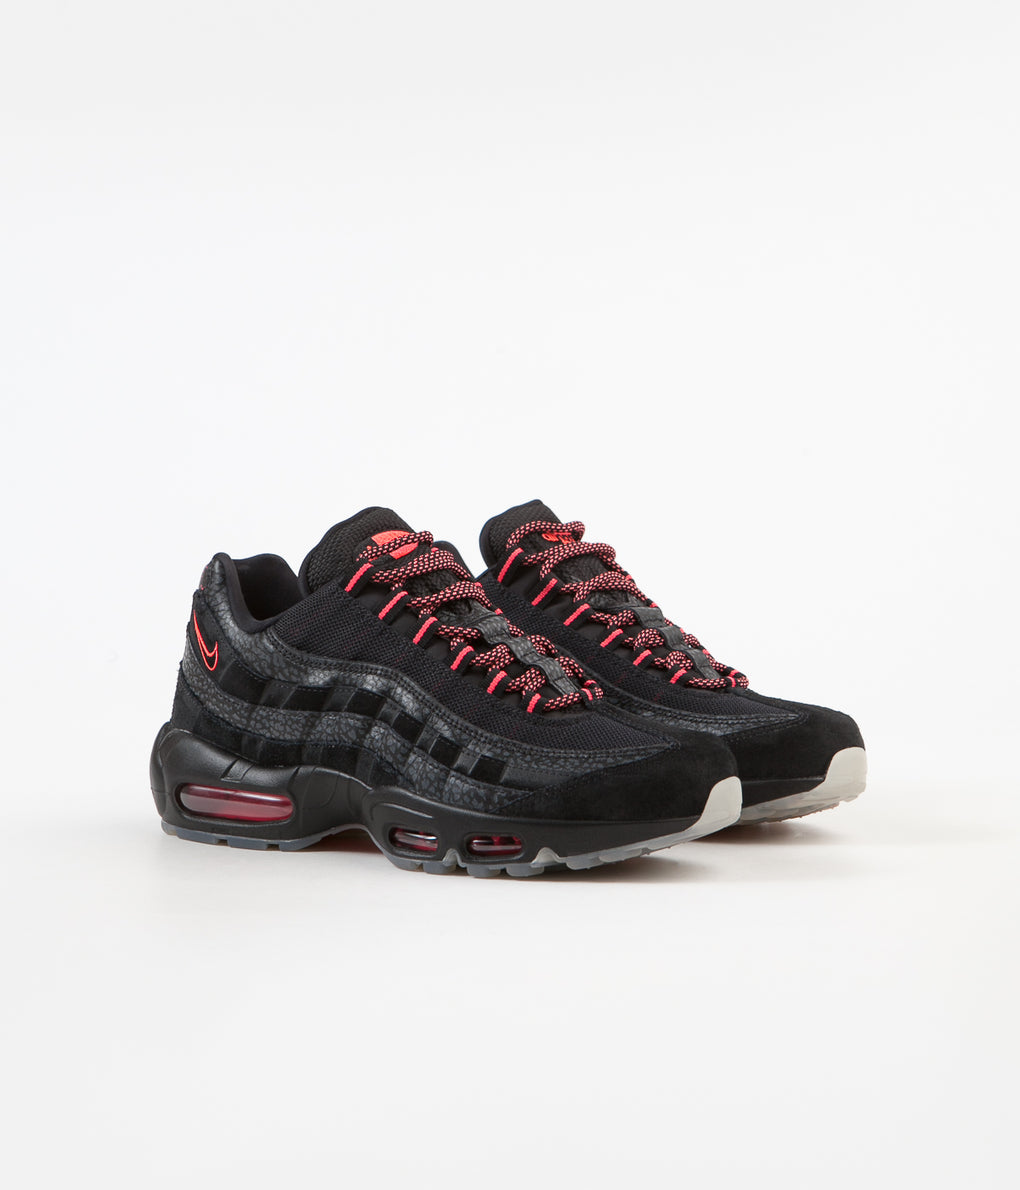 Nike Air Max 95 Shoes - Black / Infrared